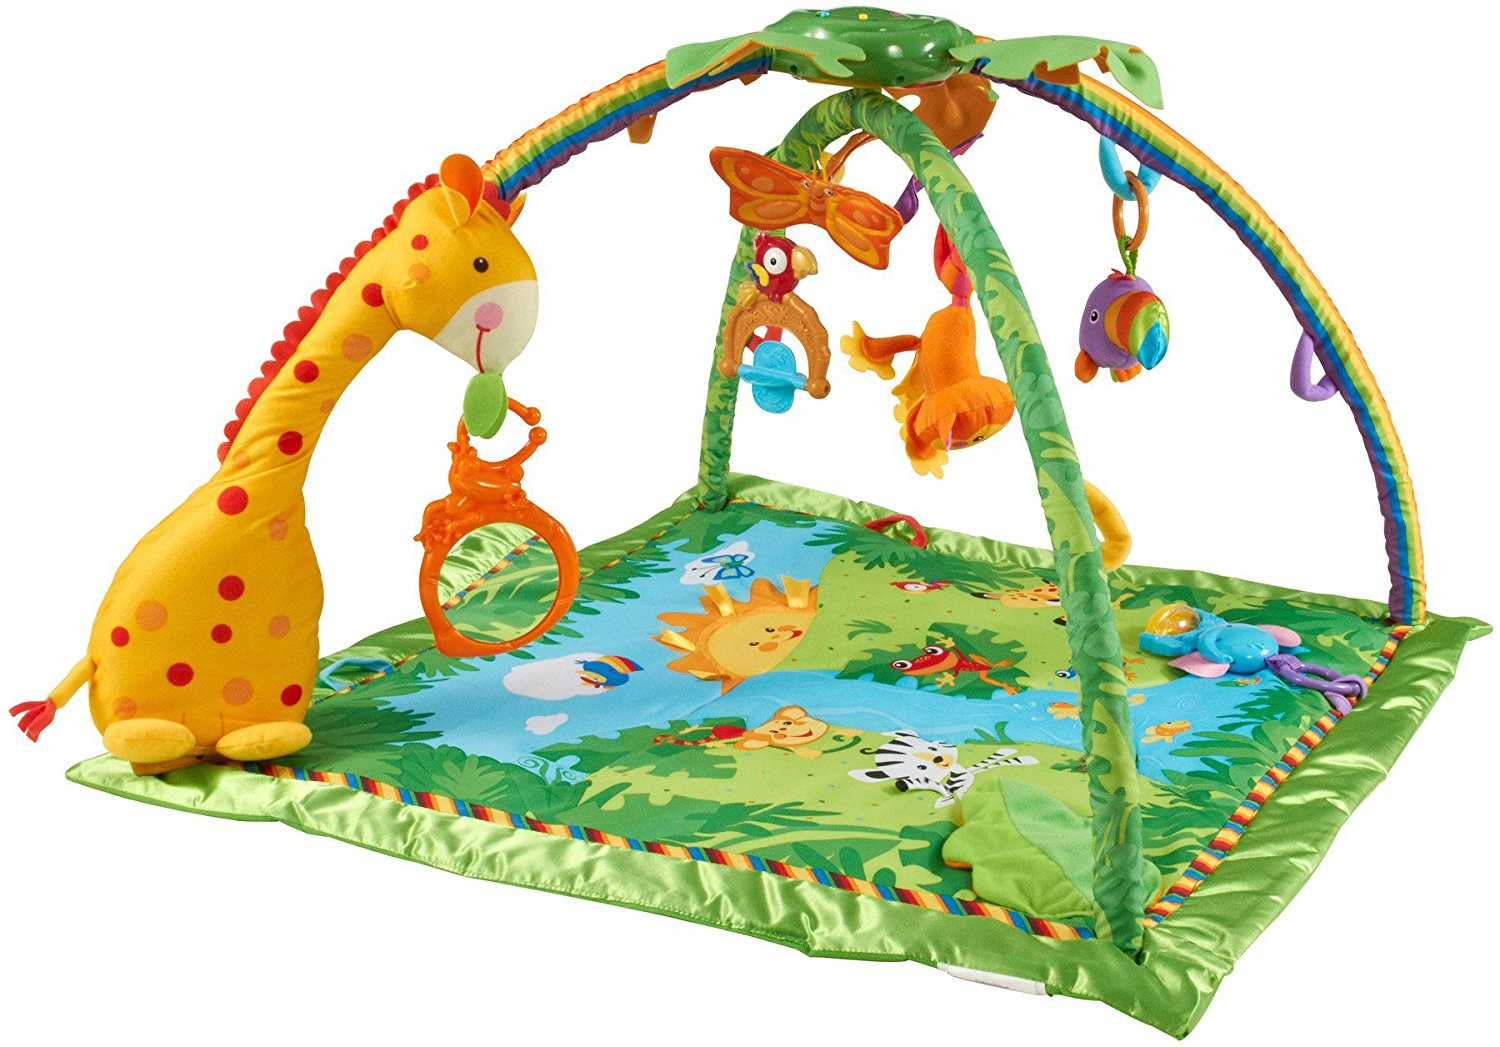 Bons plans transat balance soft beige babybj rn tapis de la jungle fisher price - Tapis animaux de la jungle ...